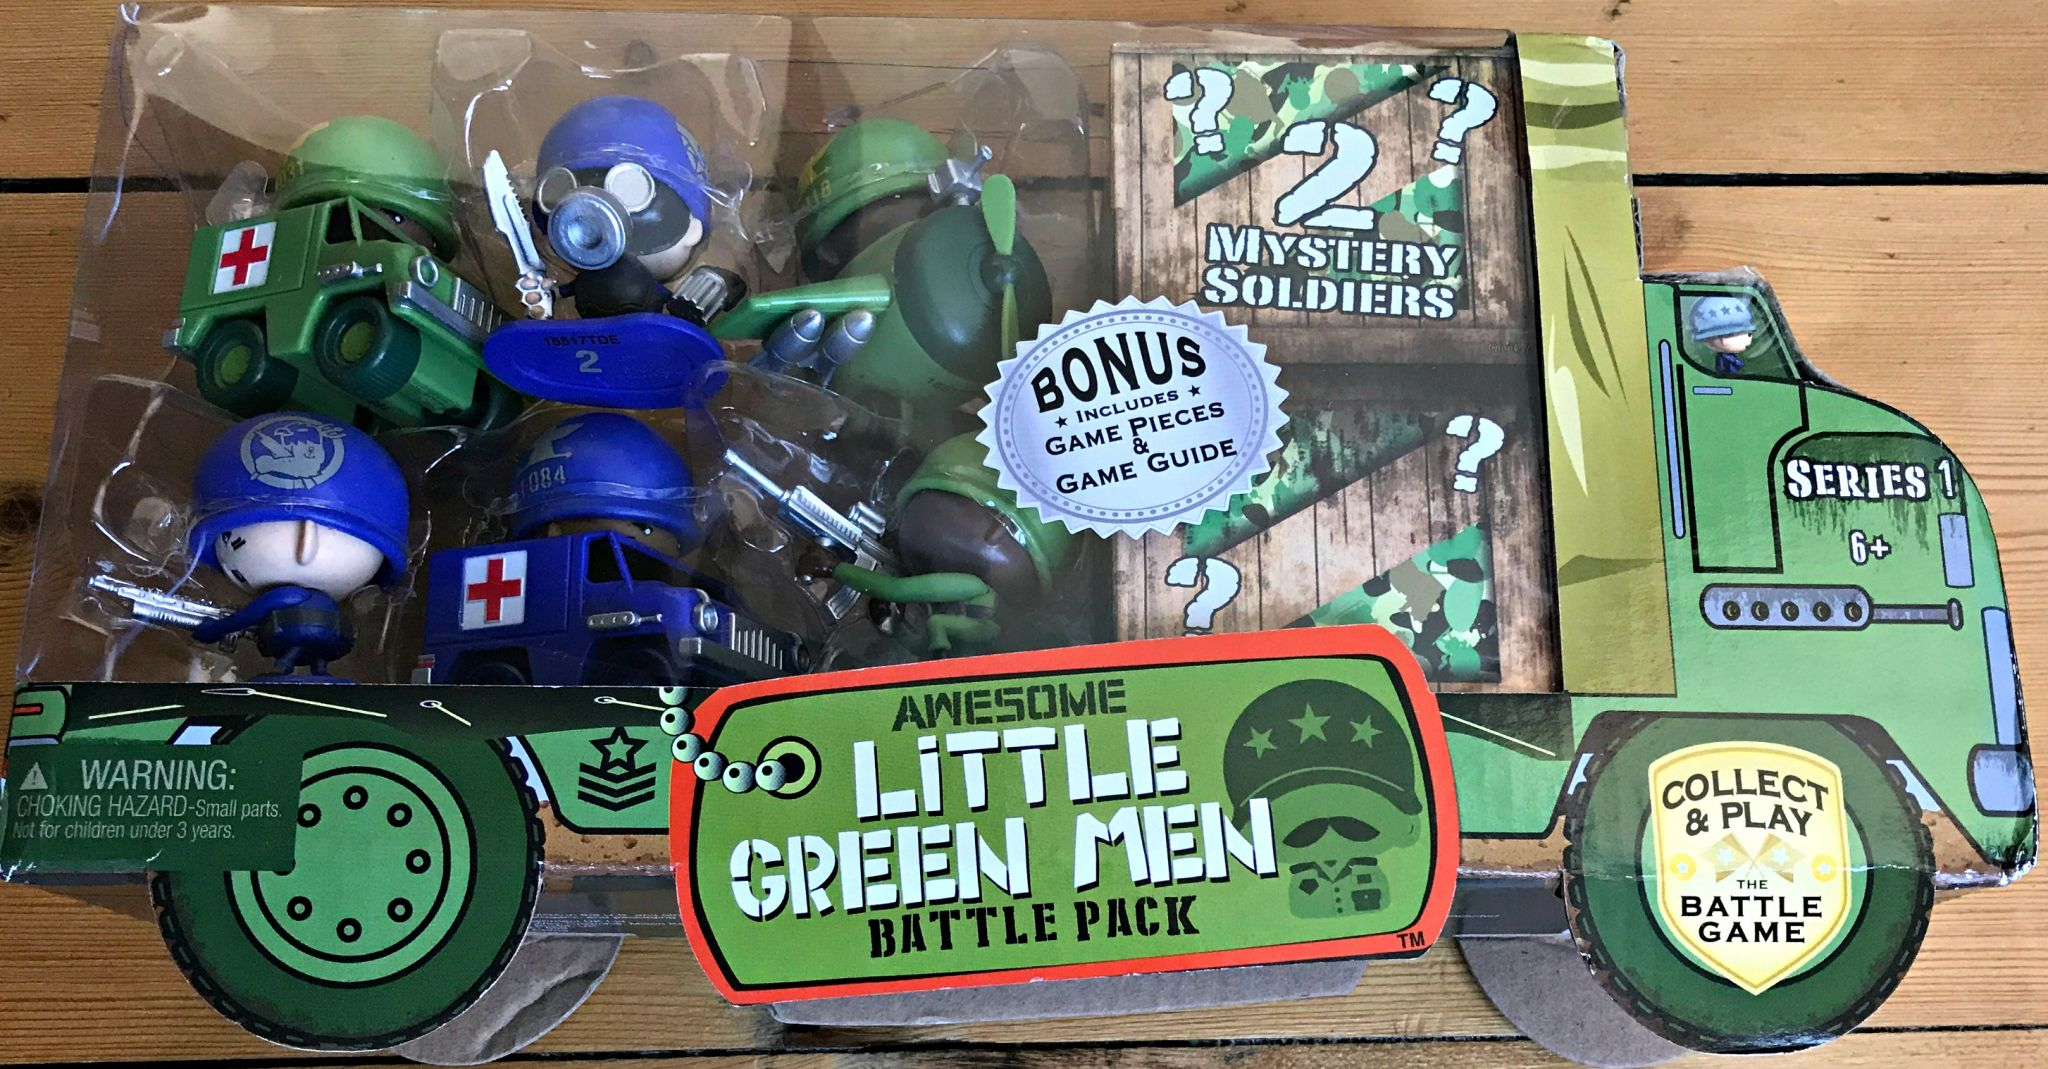 Awesome Little Green Men Battle Pack